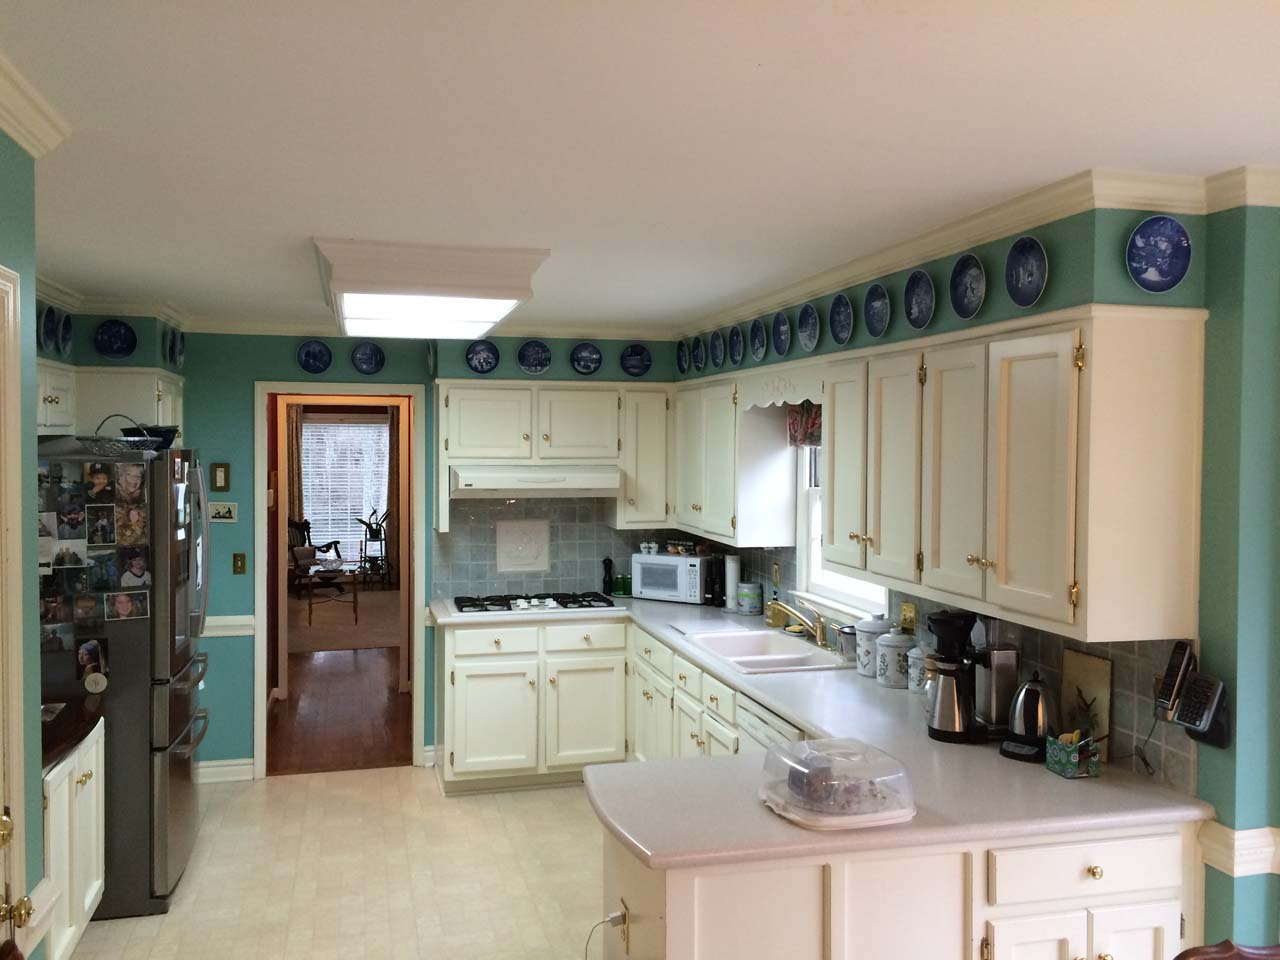 Kitchen Design Group Marietta Ga Marietta Kitchen Design Soft Serve Mosaic Design